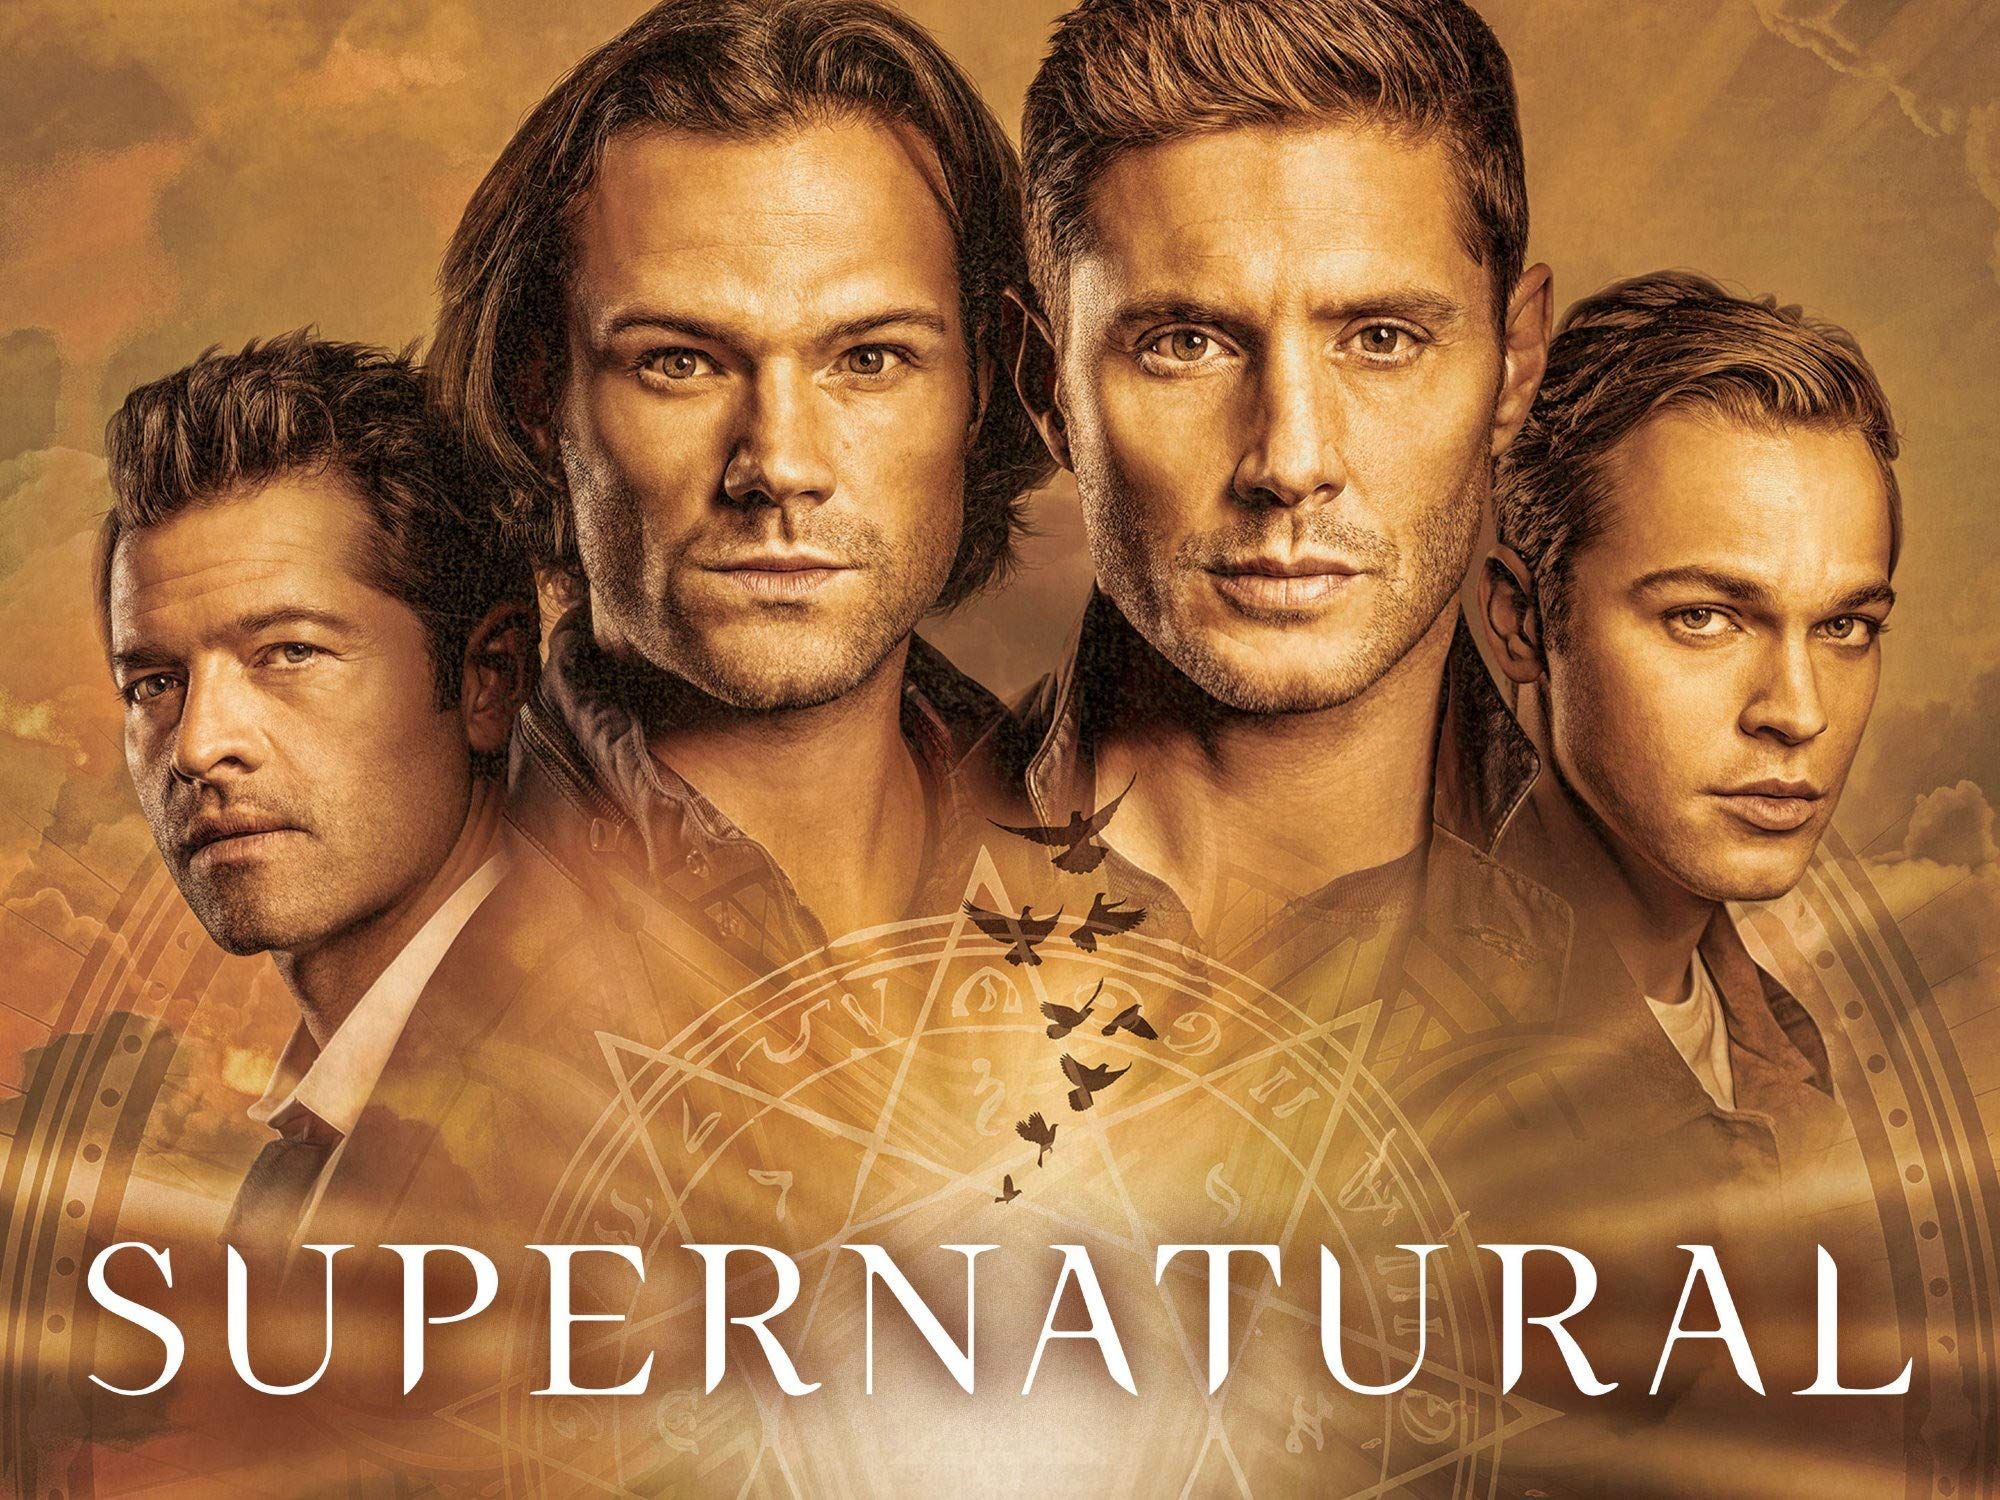 Supernatural Season 14 Episode 16 Subtitle (English Srt) Download